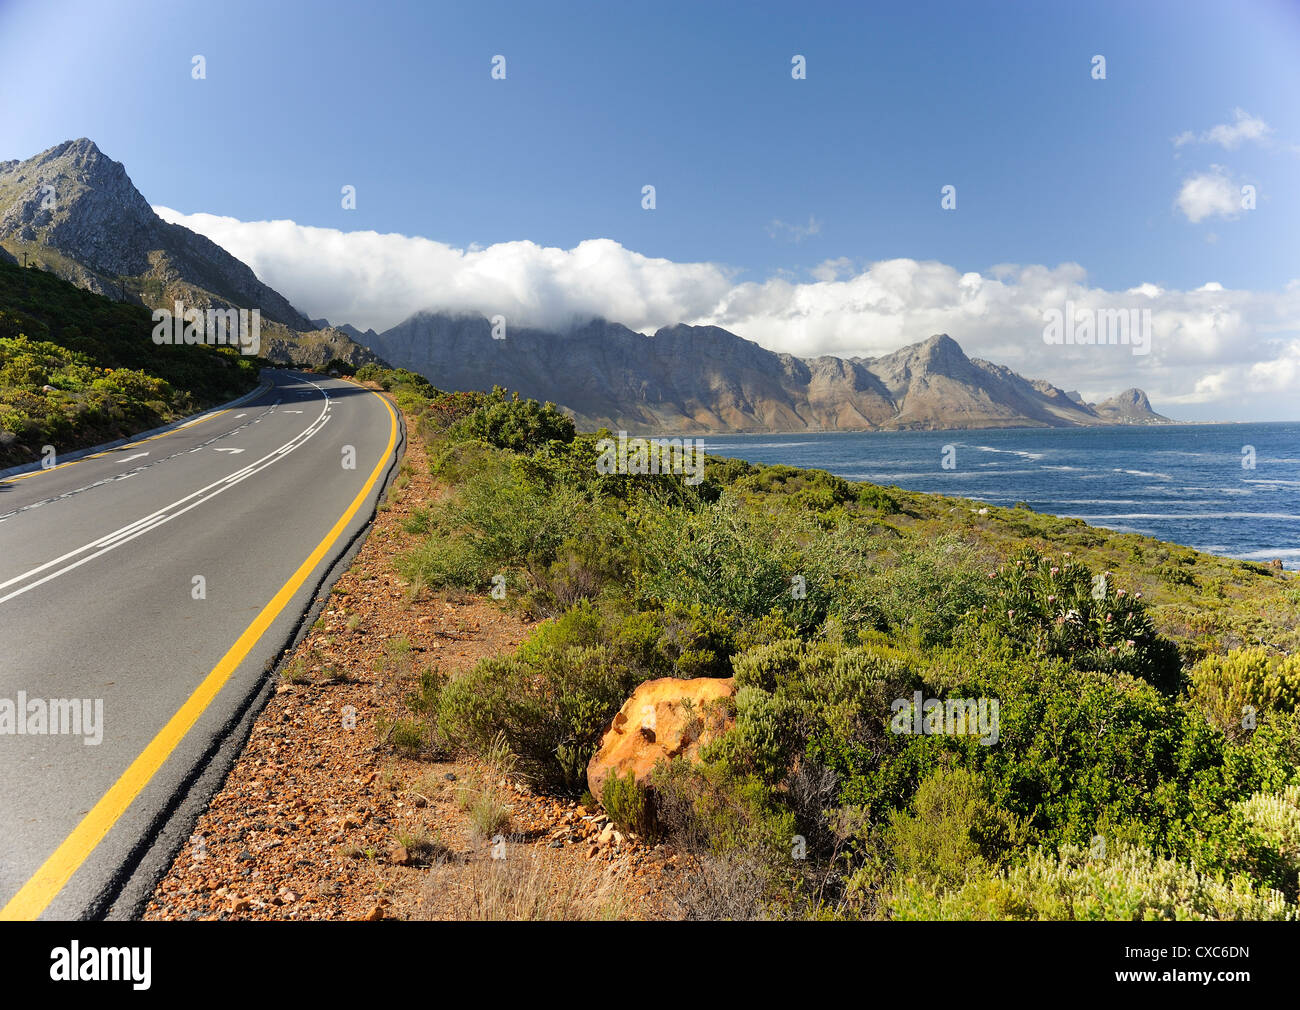 Gordon's Bay, The Garden Route, Cape Province, South Africa, Africa Stock Photo